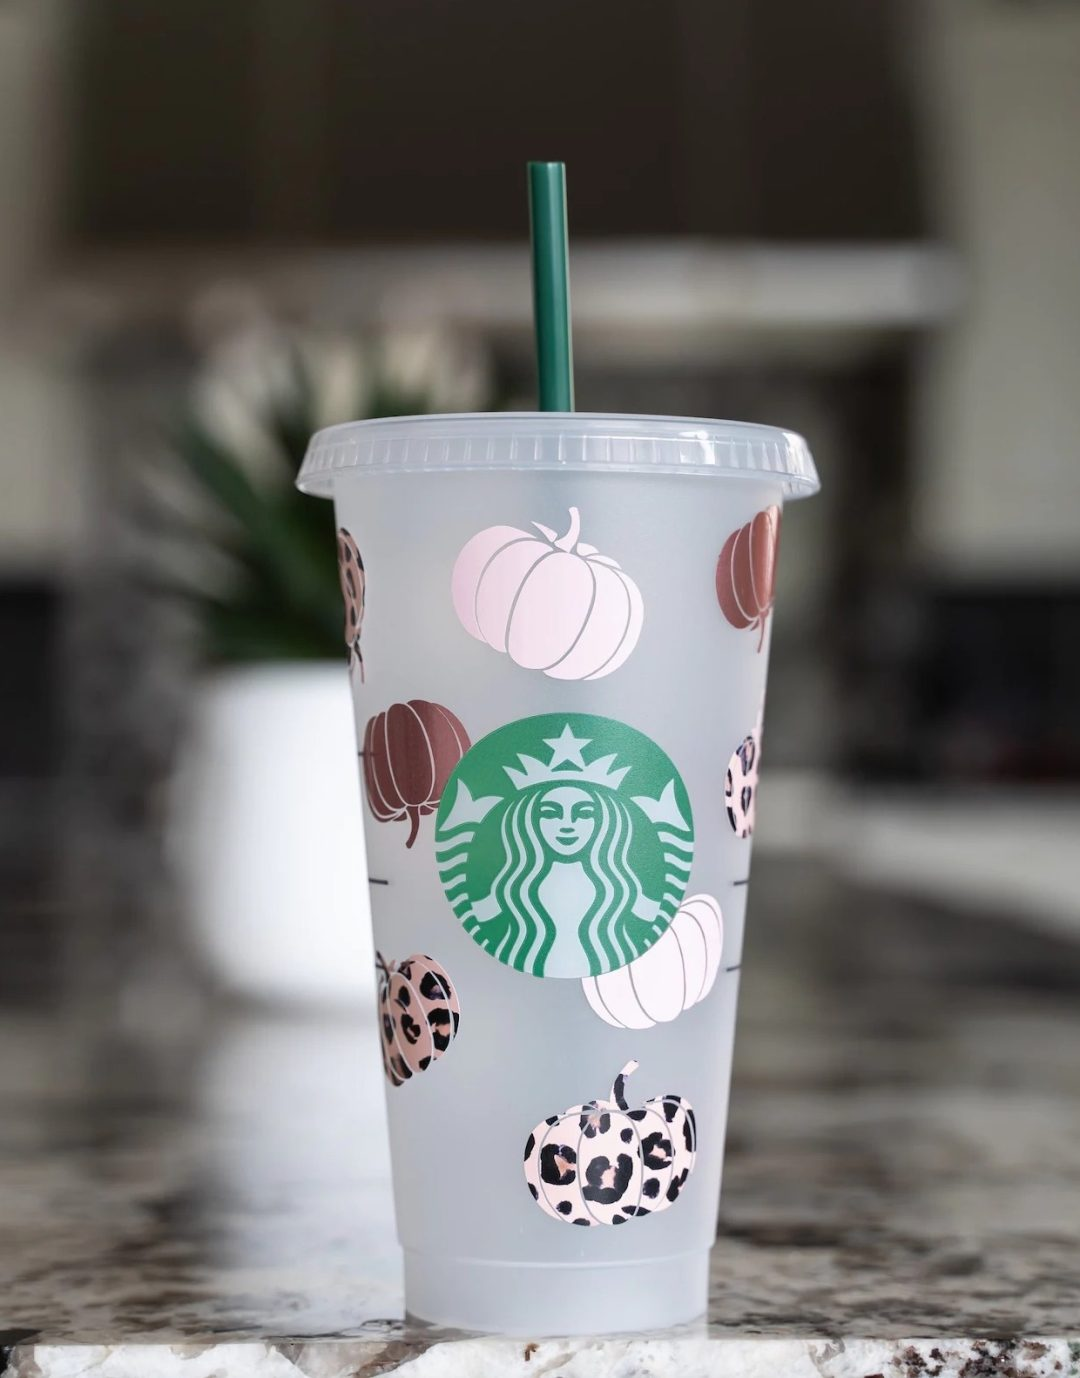 Fall customized Starbucks cup with pumpkins in rose gold and leopard print